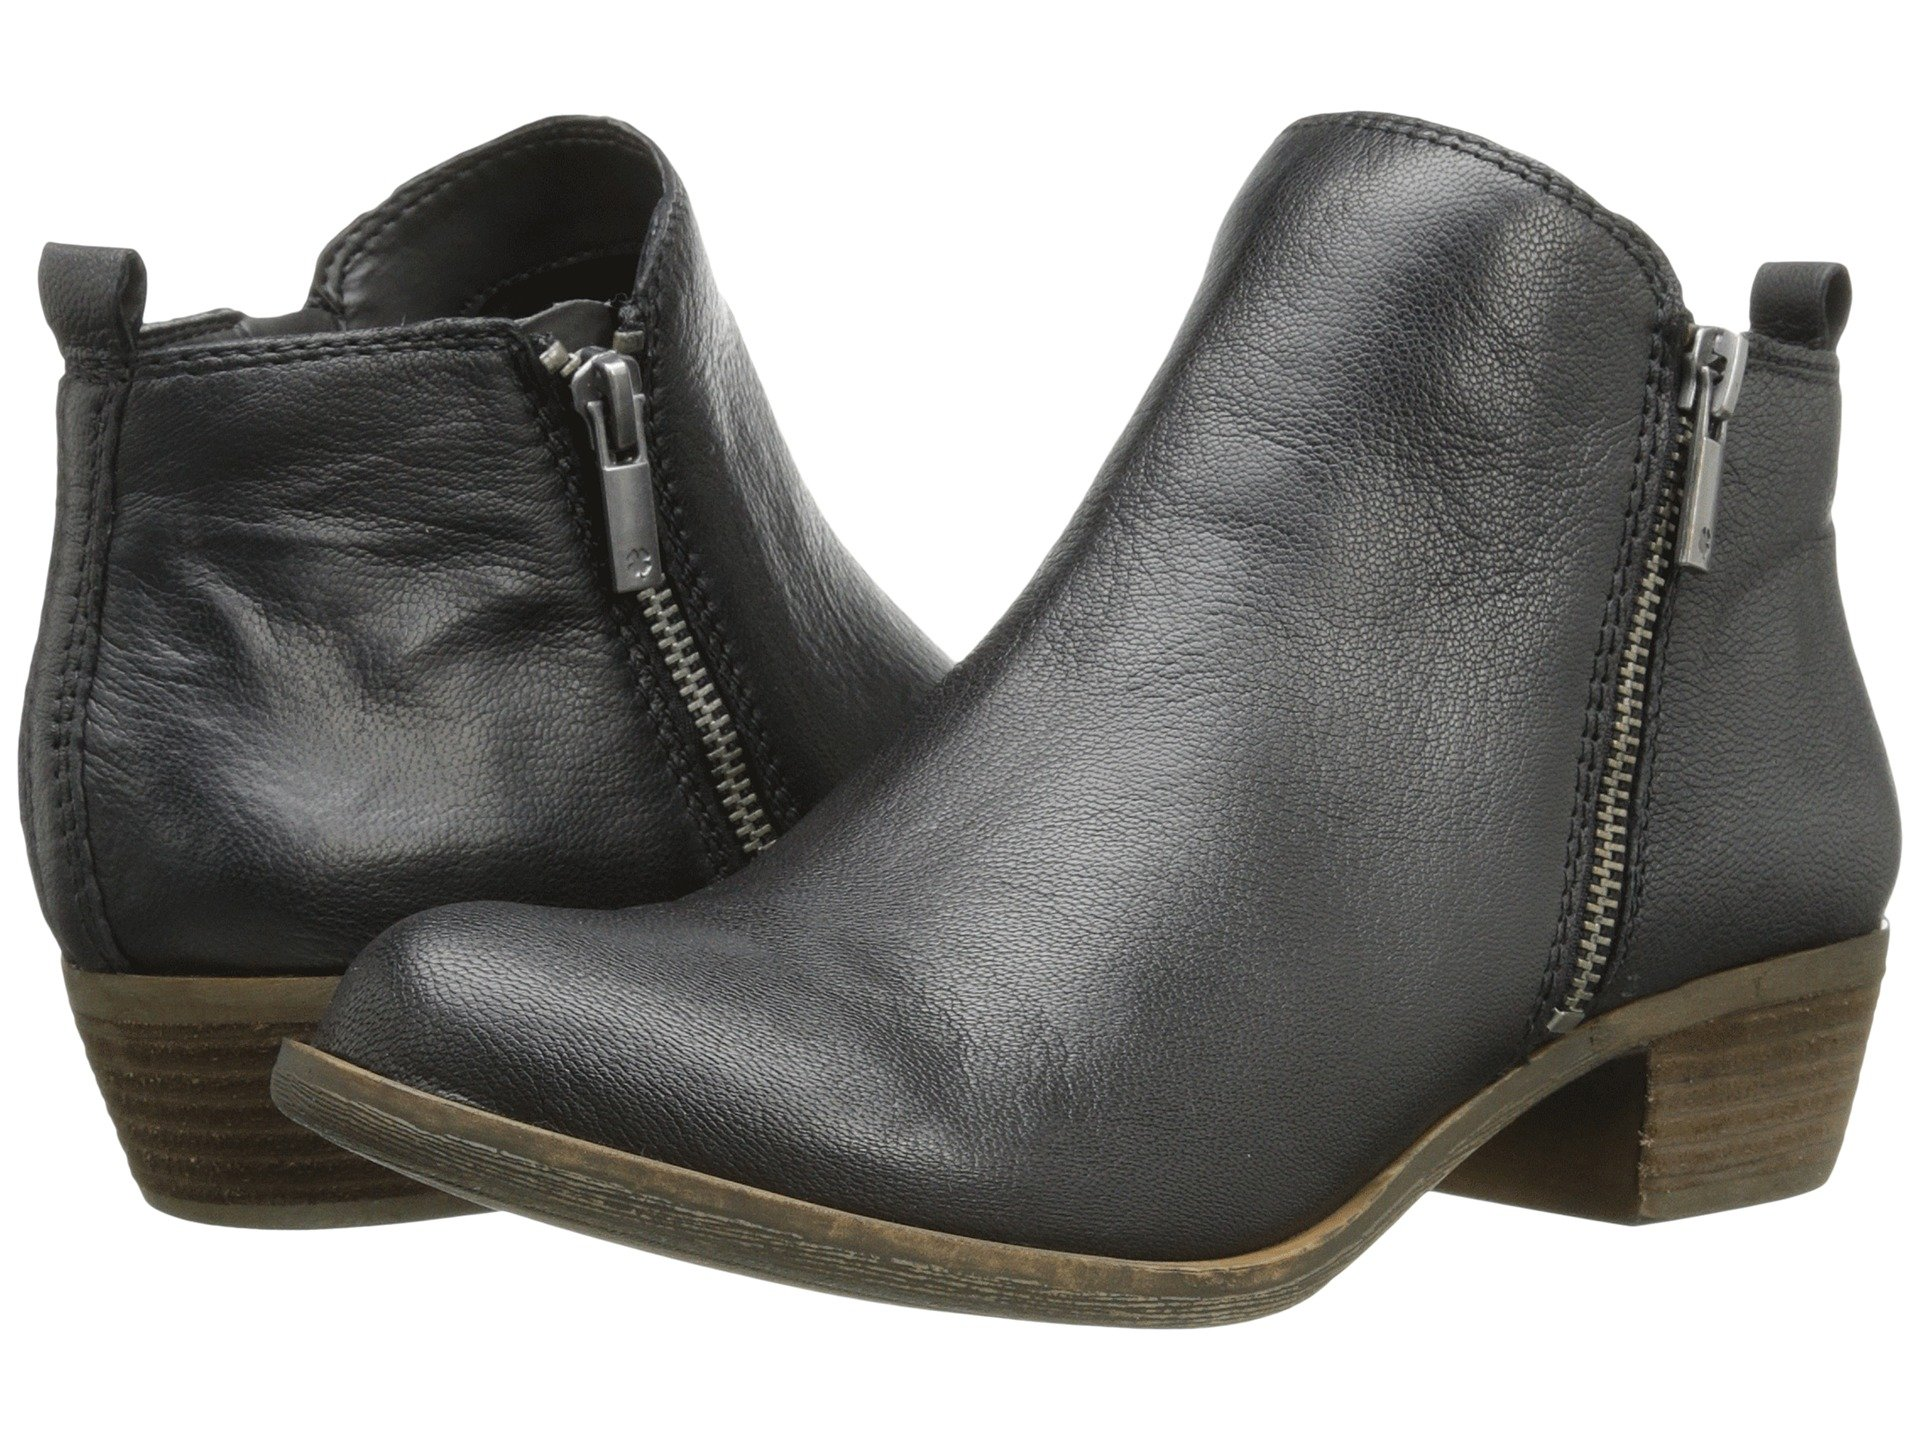 31c96bc46a Women's Lucky Brand Shoes + FREE SHIPPING | Zappos.com